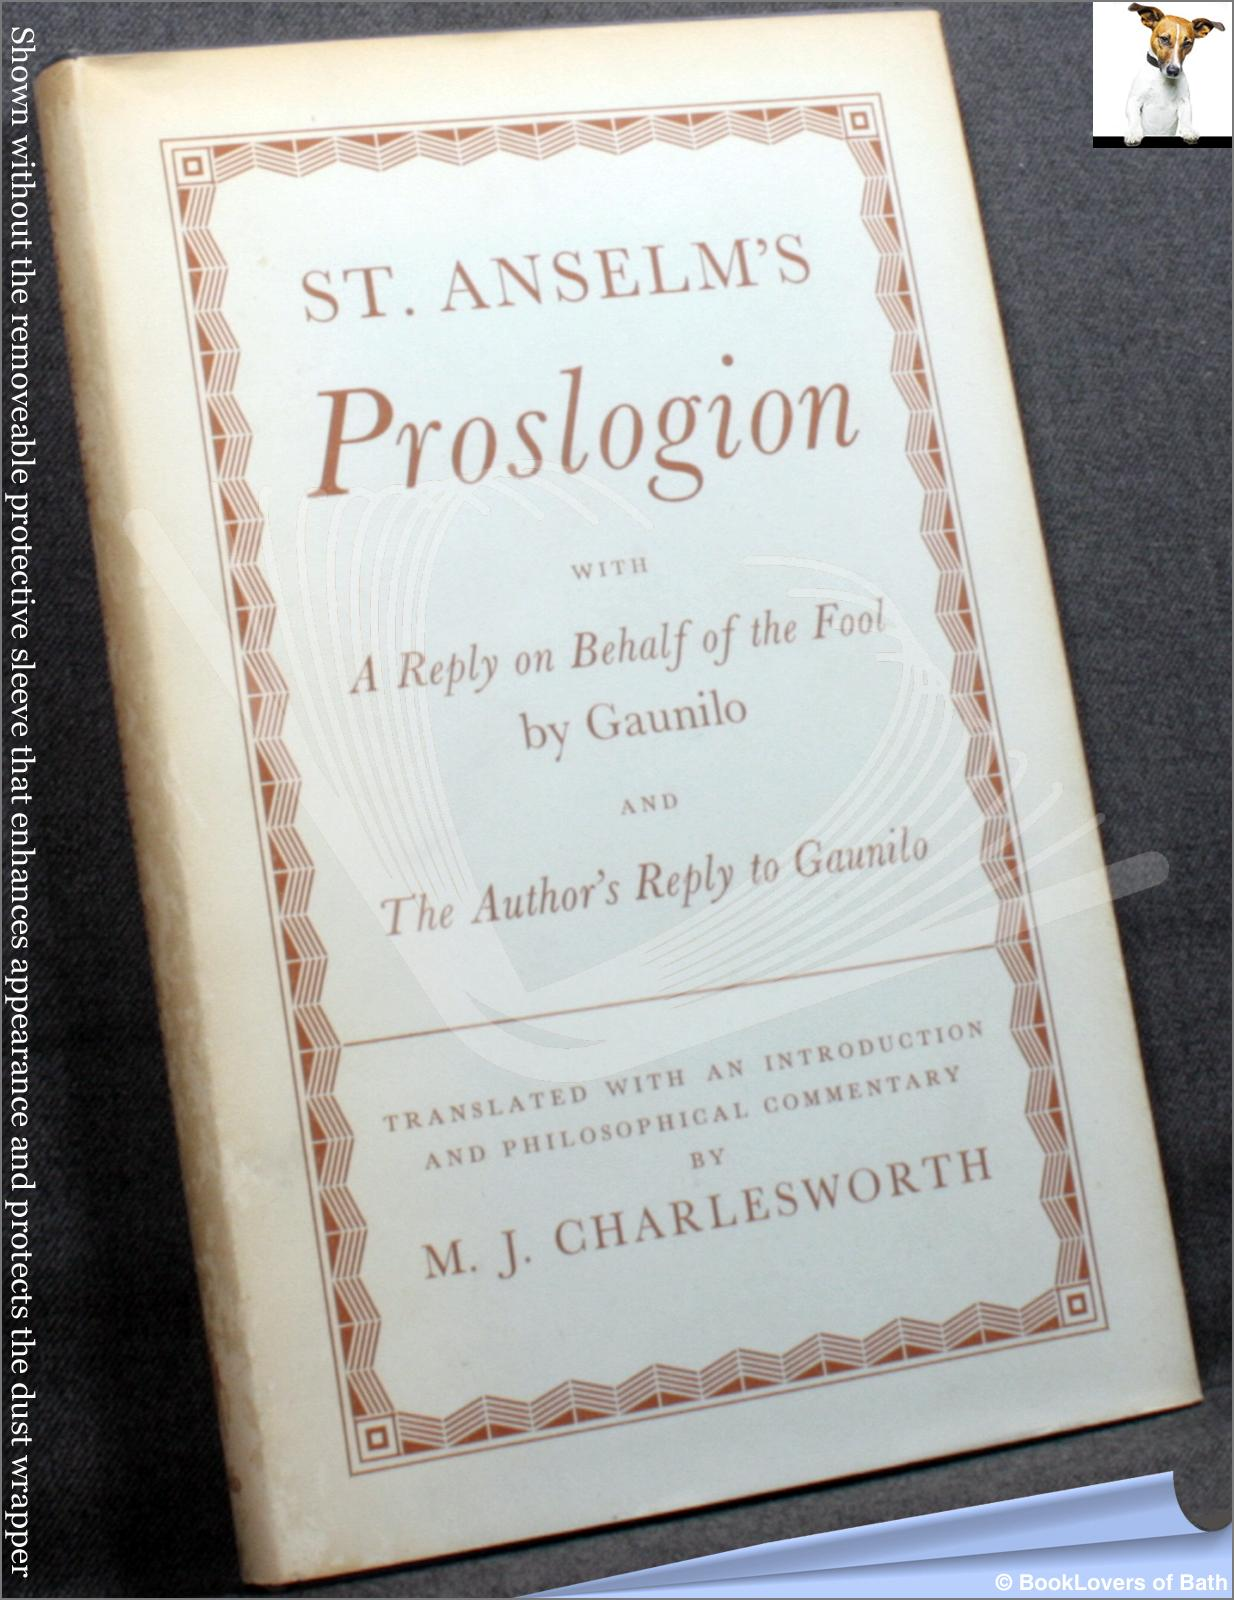 St. Anselm's Proslogion: With a Reply on Behalf of the Fool by Gaunilo and the Author's Reply to Gaunilo - Gaunilo